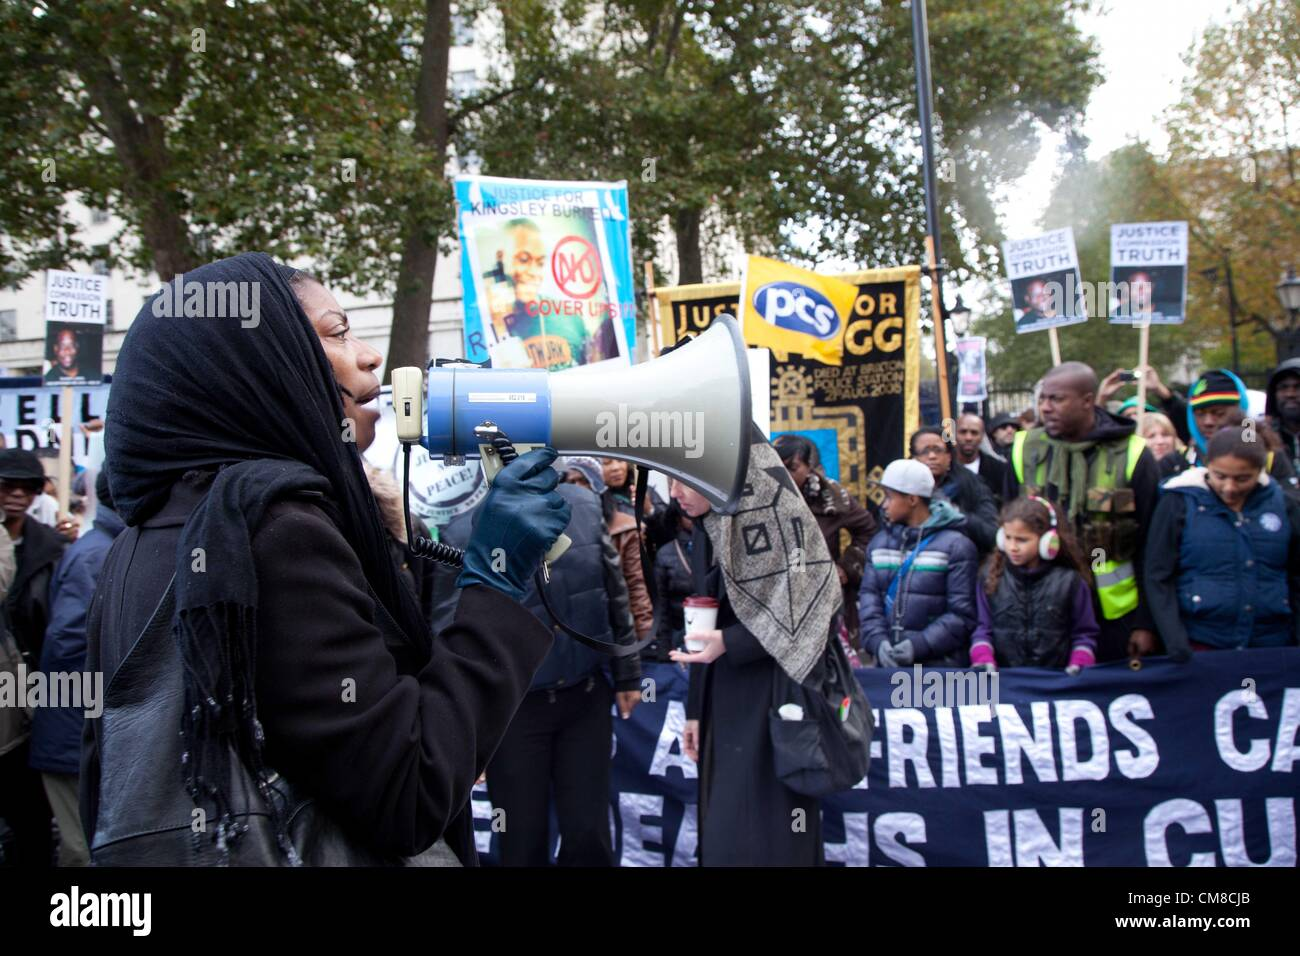 London, UK. 27th October 2012 The United Families and Friends Campaign (UFFC) gathered in Trafalgar Square today - Stock Image